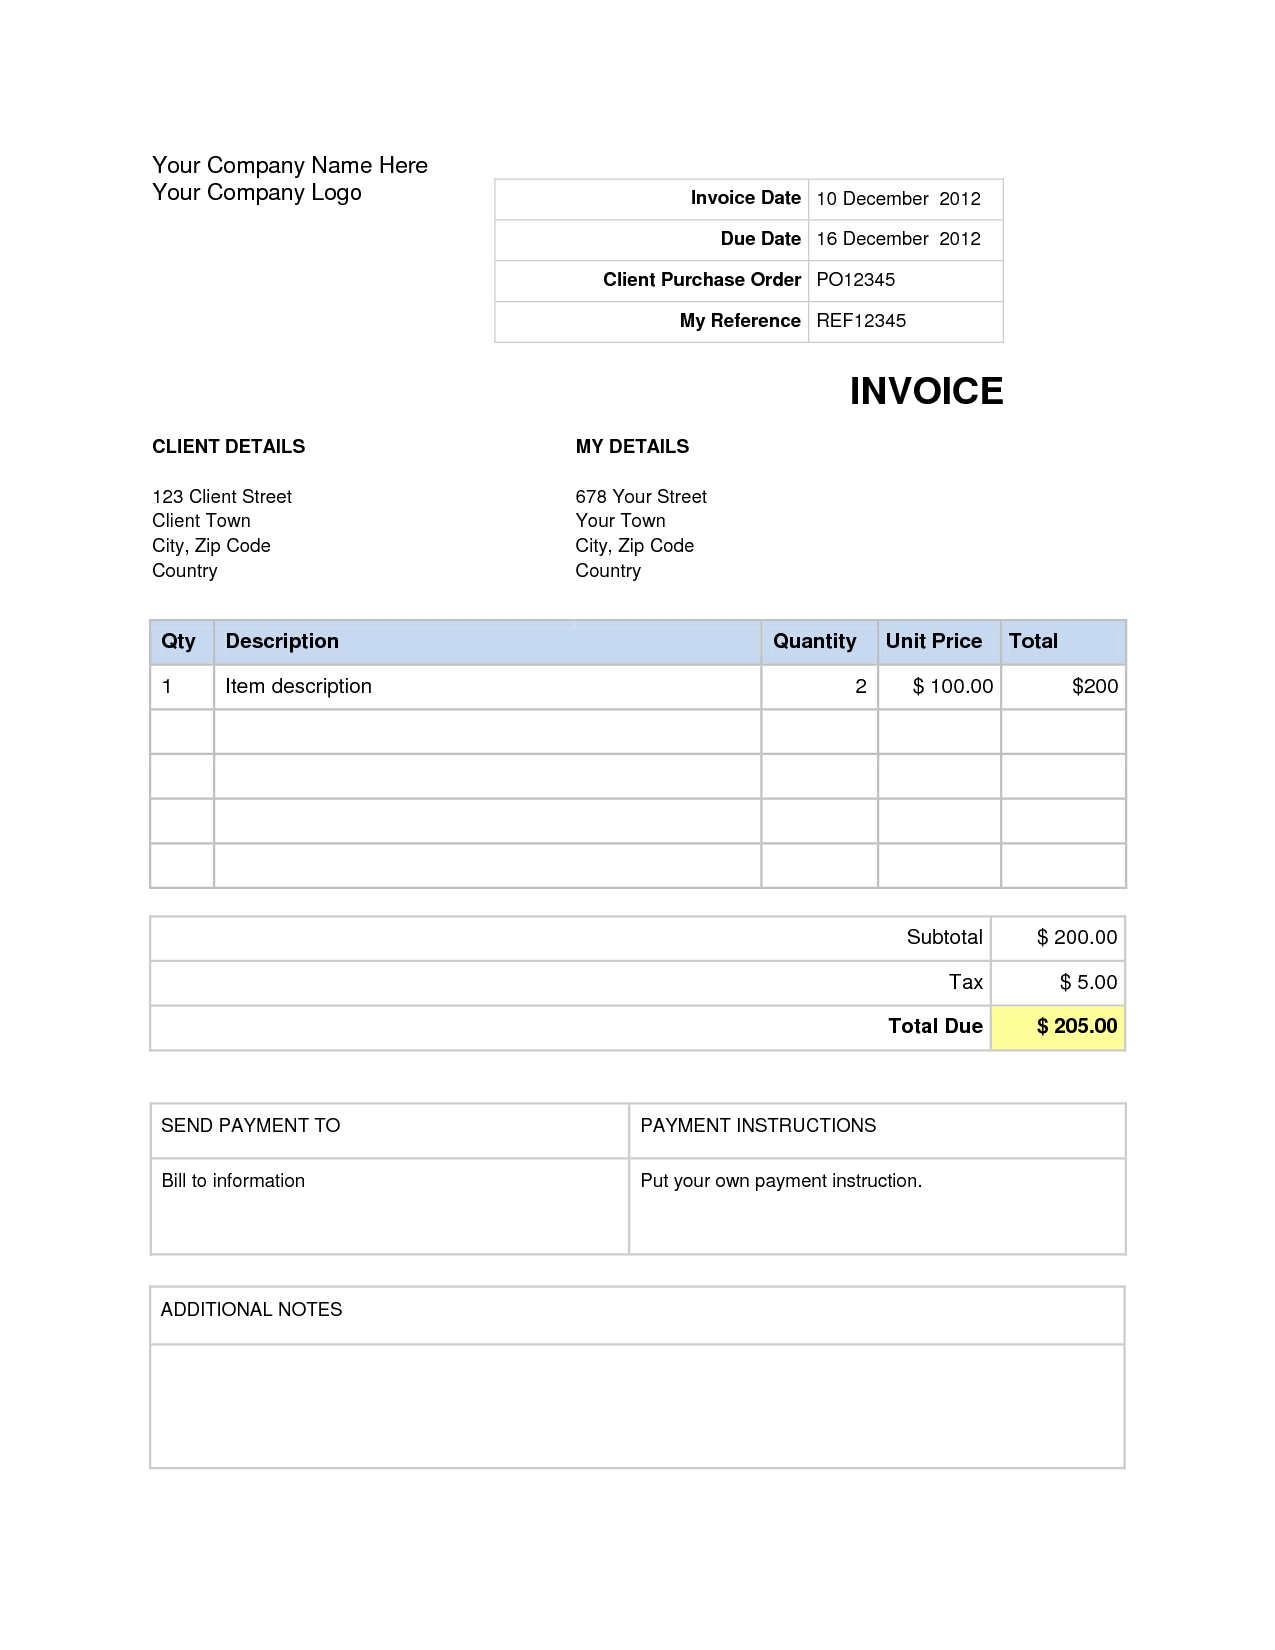 download invoice template word 2007 invoice example. Black Bedroom Furniture Sets. Home Design Ideas